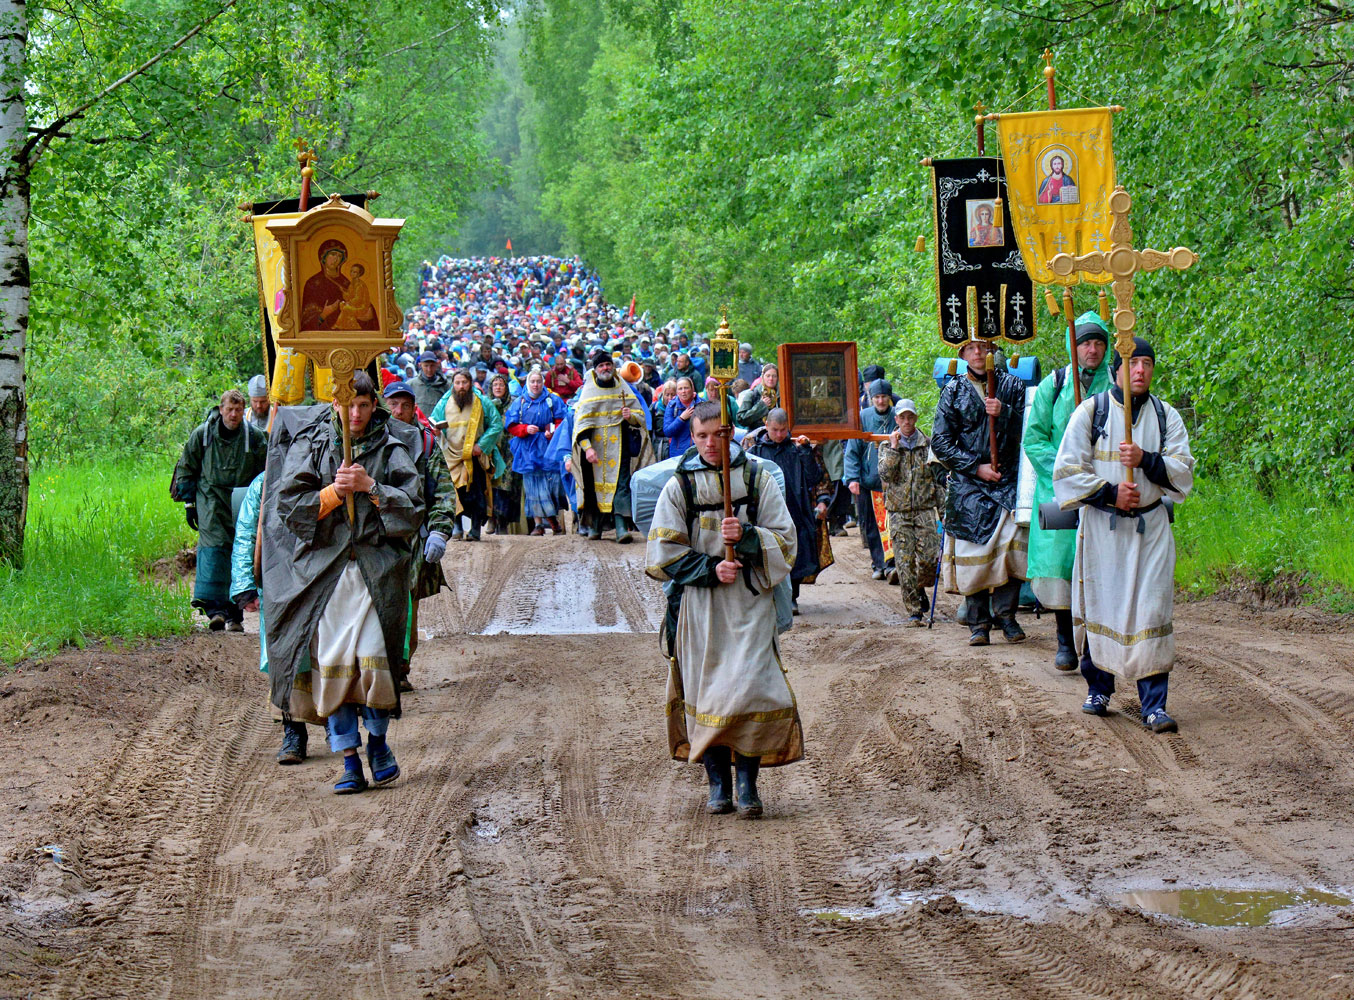 Religious procession under the icon of St. Nicholas the Wonderworker, © Stanislav Shaklein, 3rd Place, Russian Civilization International Photo Contest